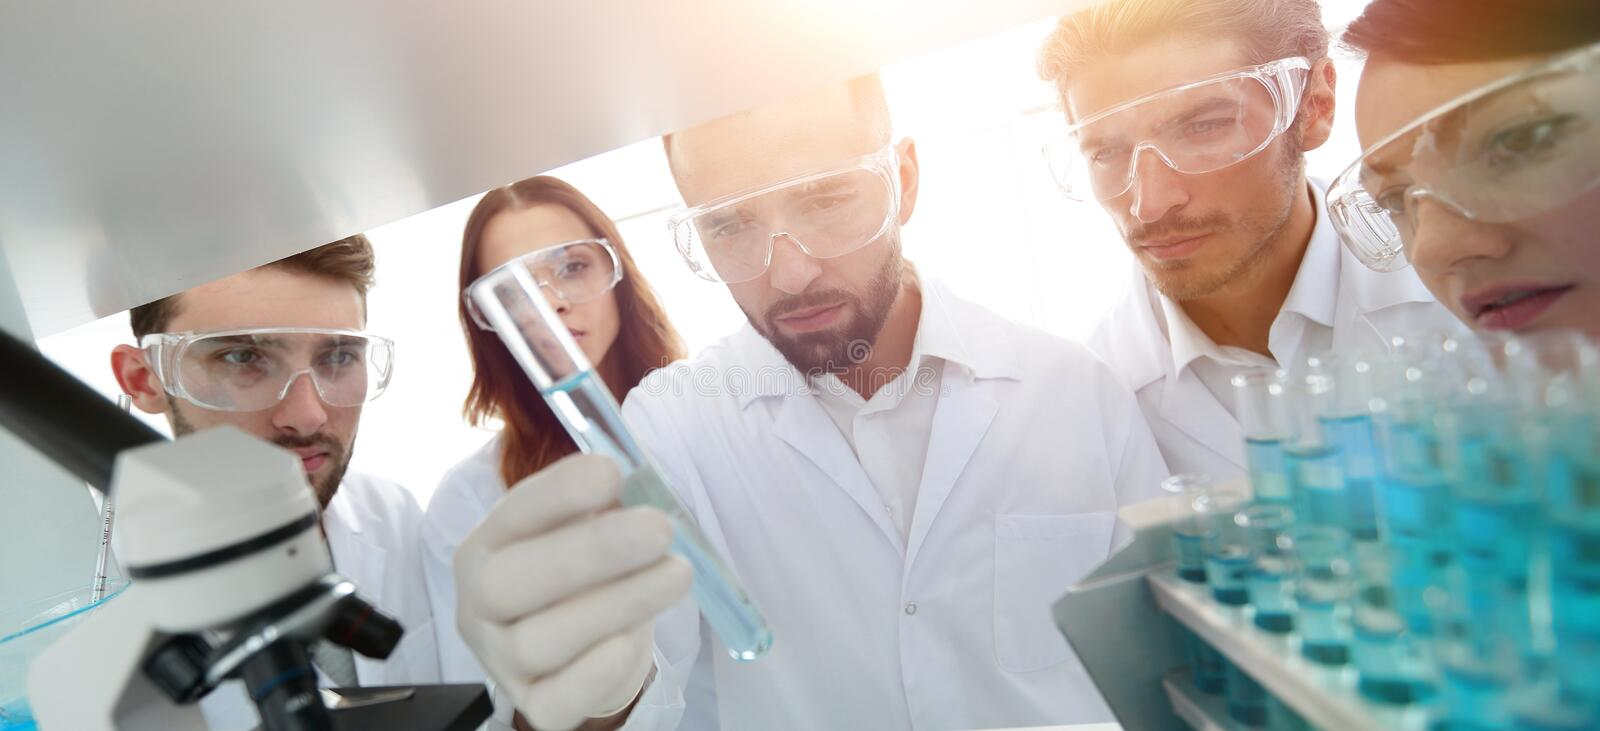 Group of pharmacists working in the laboratory. royalty free stock photo